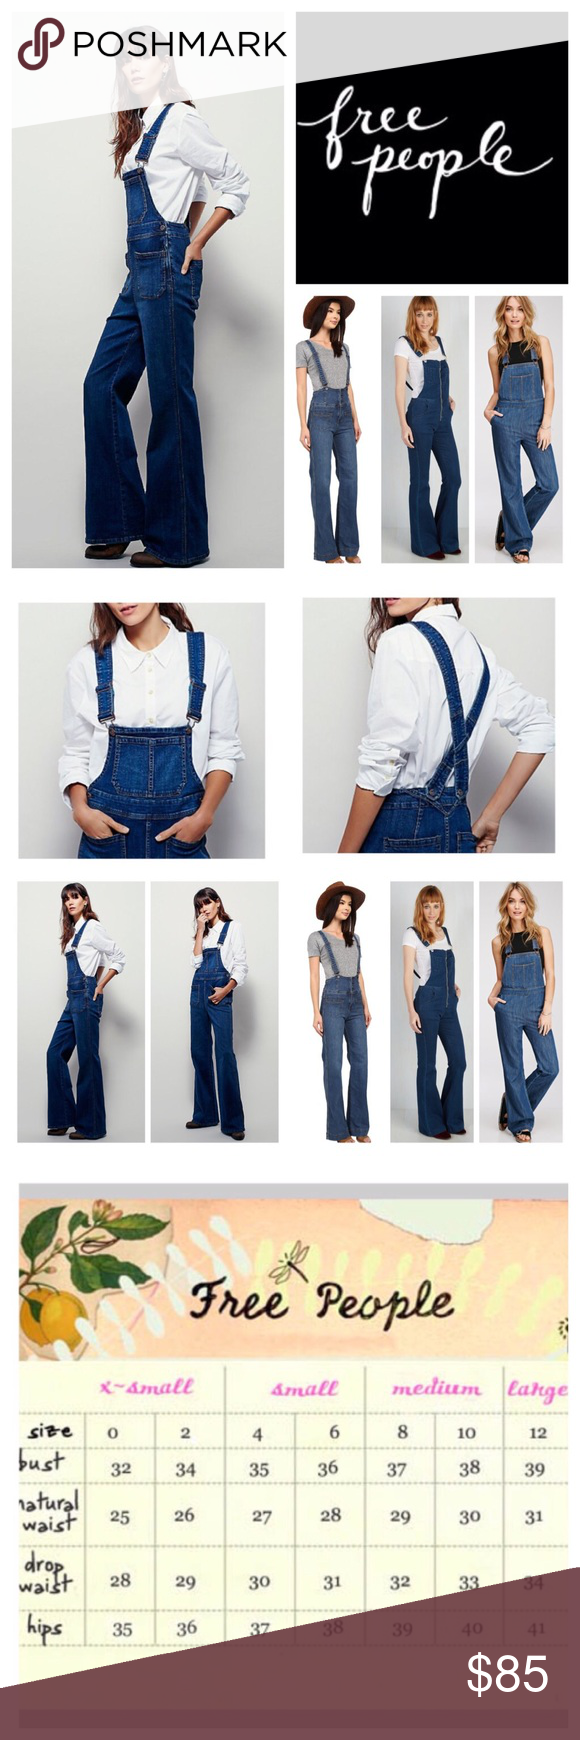 """Free People Teague Retro Denim Overalls.  NWOT. Free People Blue Teague Retro Denim Overalls, 98% cotton, 2% spandex, machine washable, 27"""" waist, 11.5"""" front rise, 14.5"""" back rise, 32.5"""" inseam, 60"""" length from strap to hem, 21"""" leg opening all around, made from stretchy, gummy fabric these retro inspired overalls featured a flared leg and front back slip pockets, front bib pocket, two back pockets, hidden side zip button closure, adjustable straps, measurements are approx. New without tag…"""